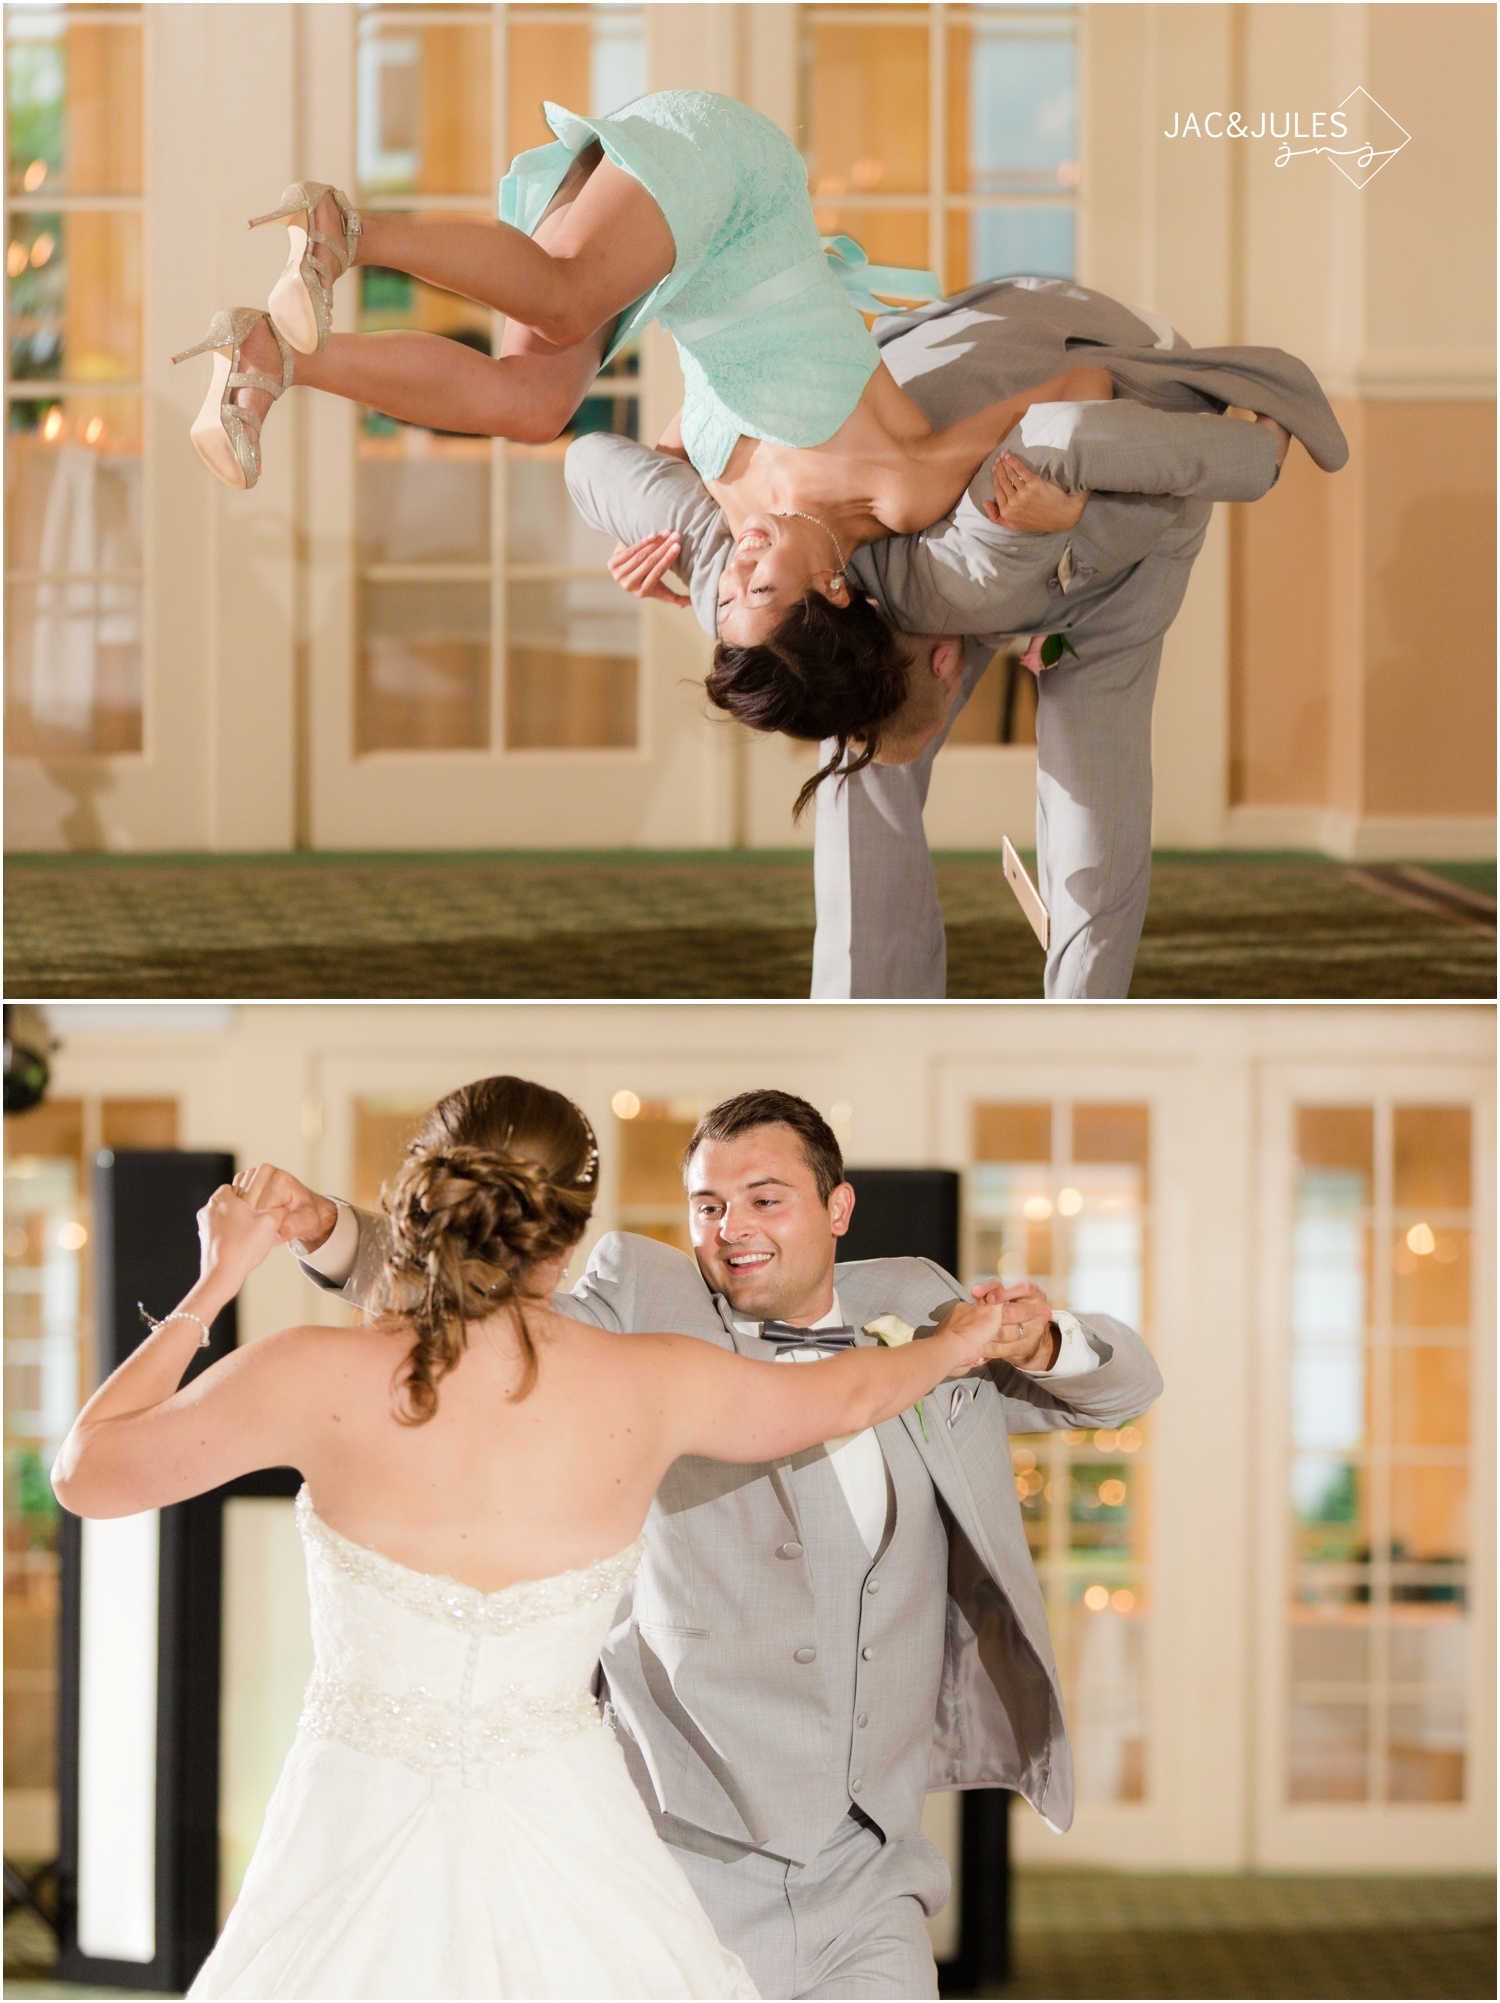 bridal party entrance and first dance at forsgate country club in Monroe, NJ.